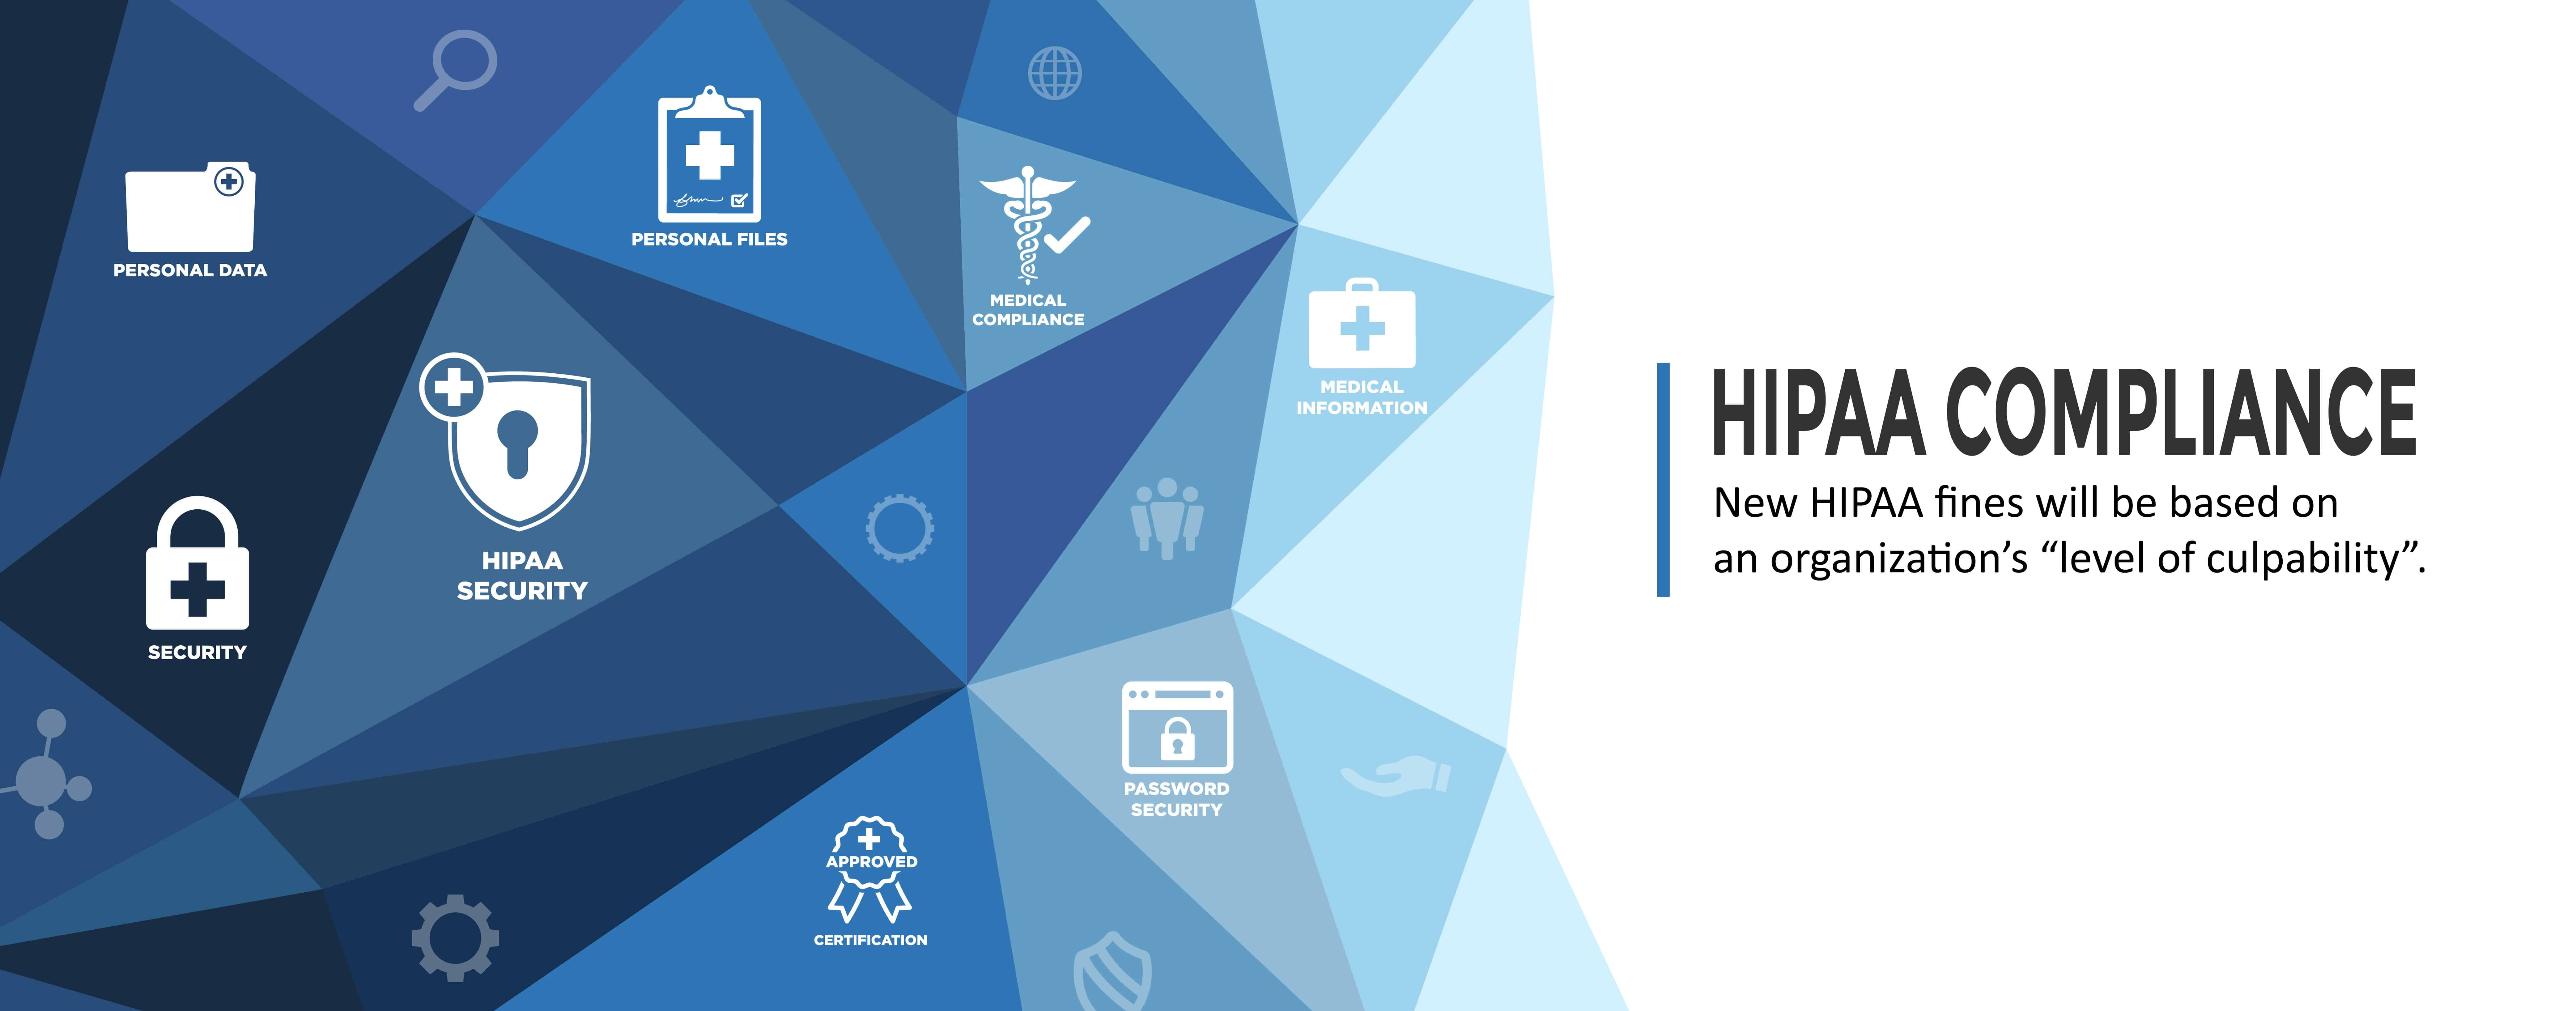 """New HIPAA fines will be based on an organization's """"level of culpability""""."""